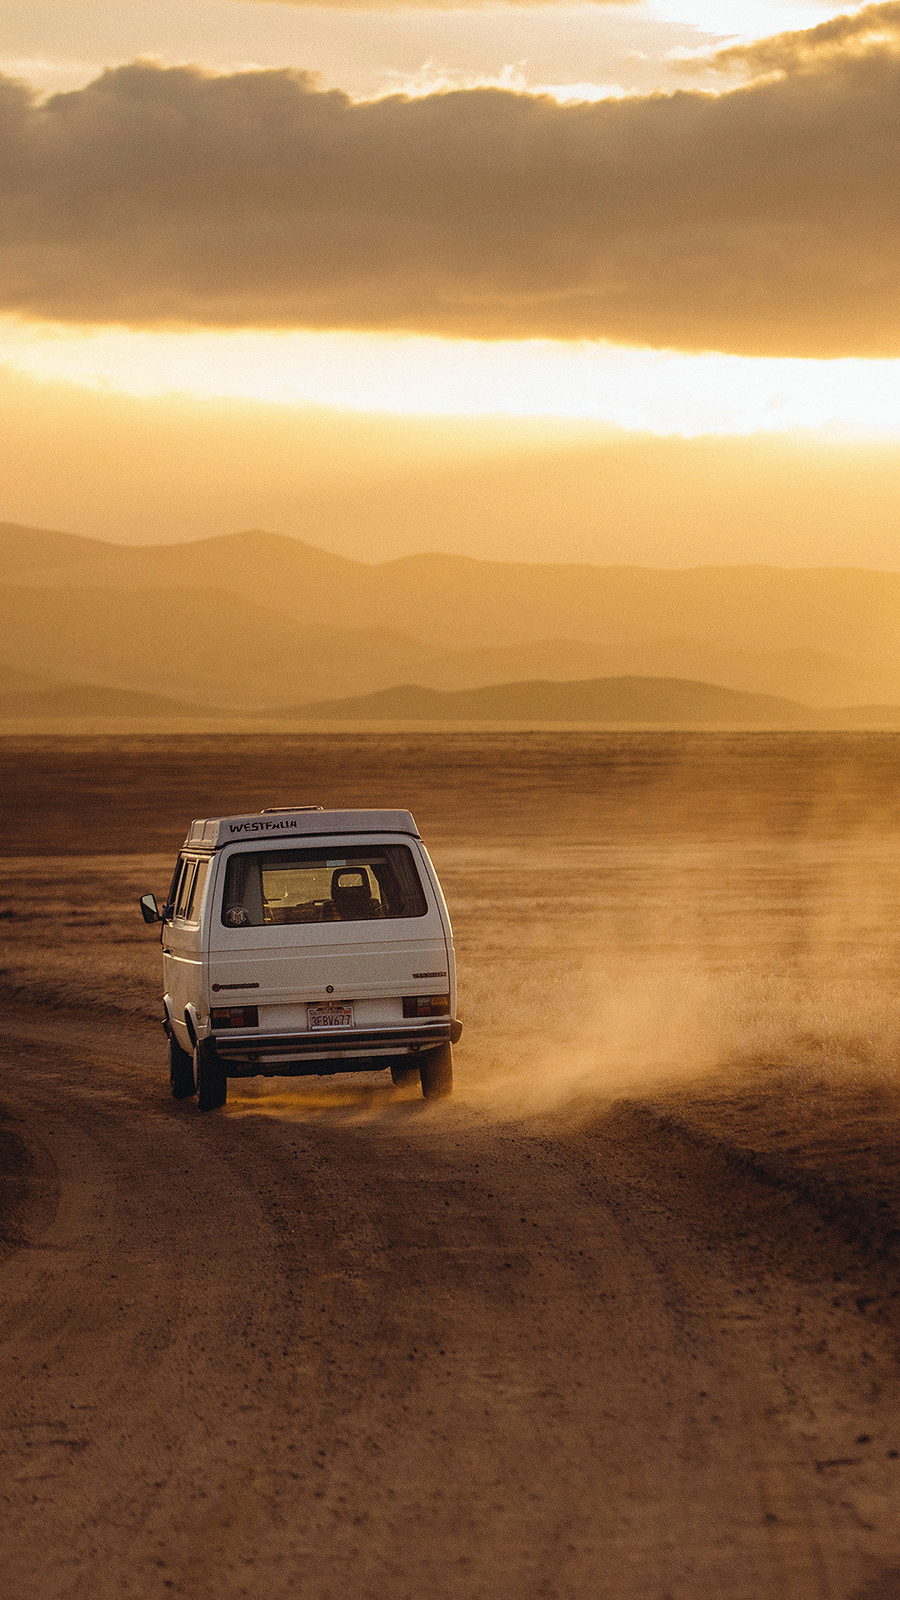 Desert Off Road Car Sand Storm Wallpapers Free Download